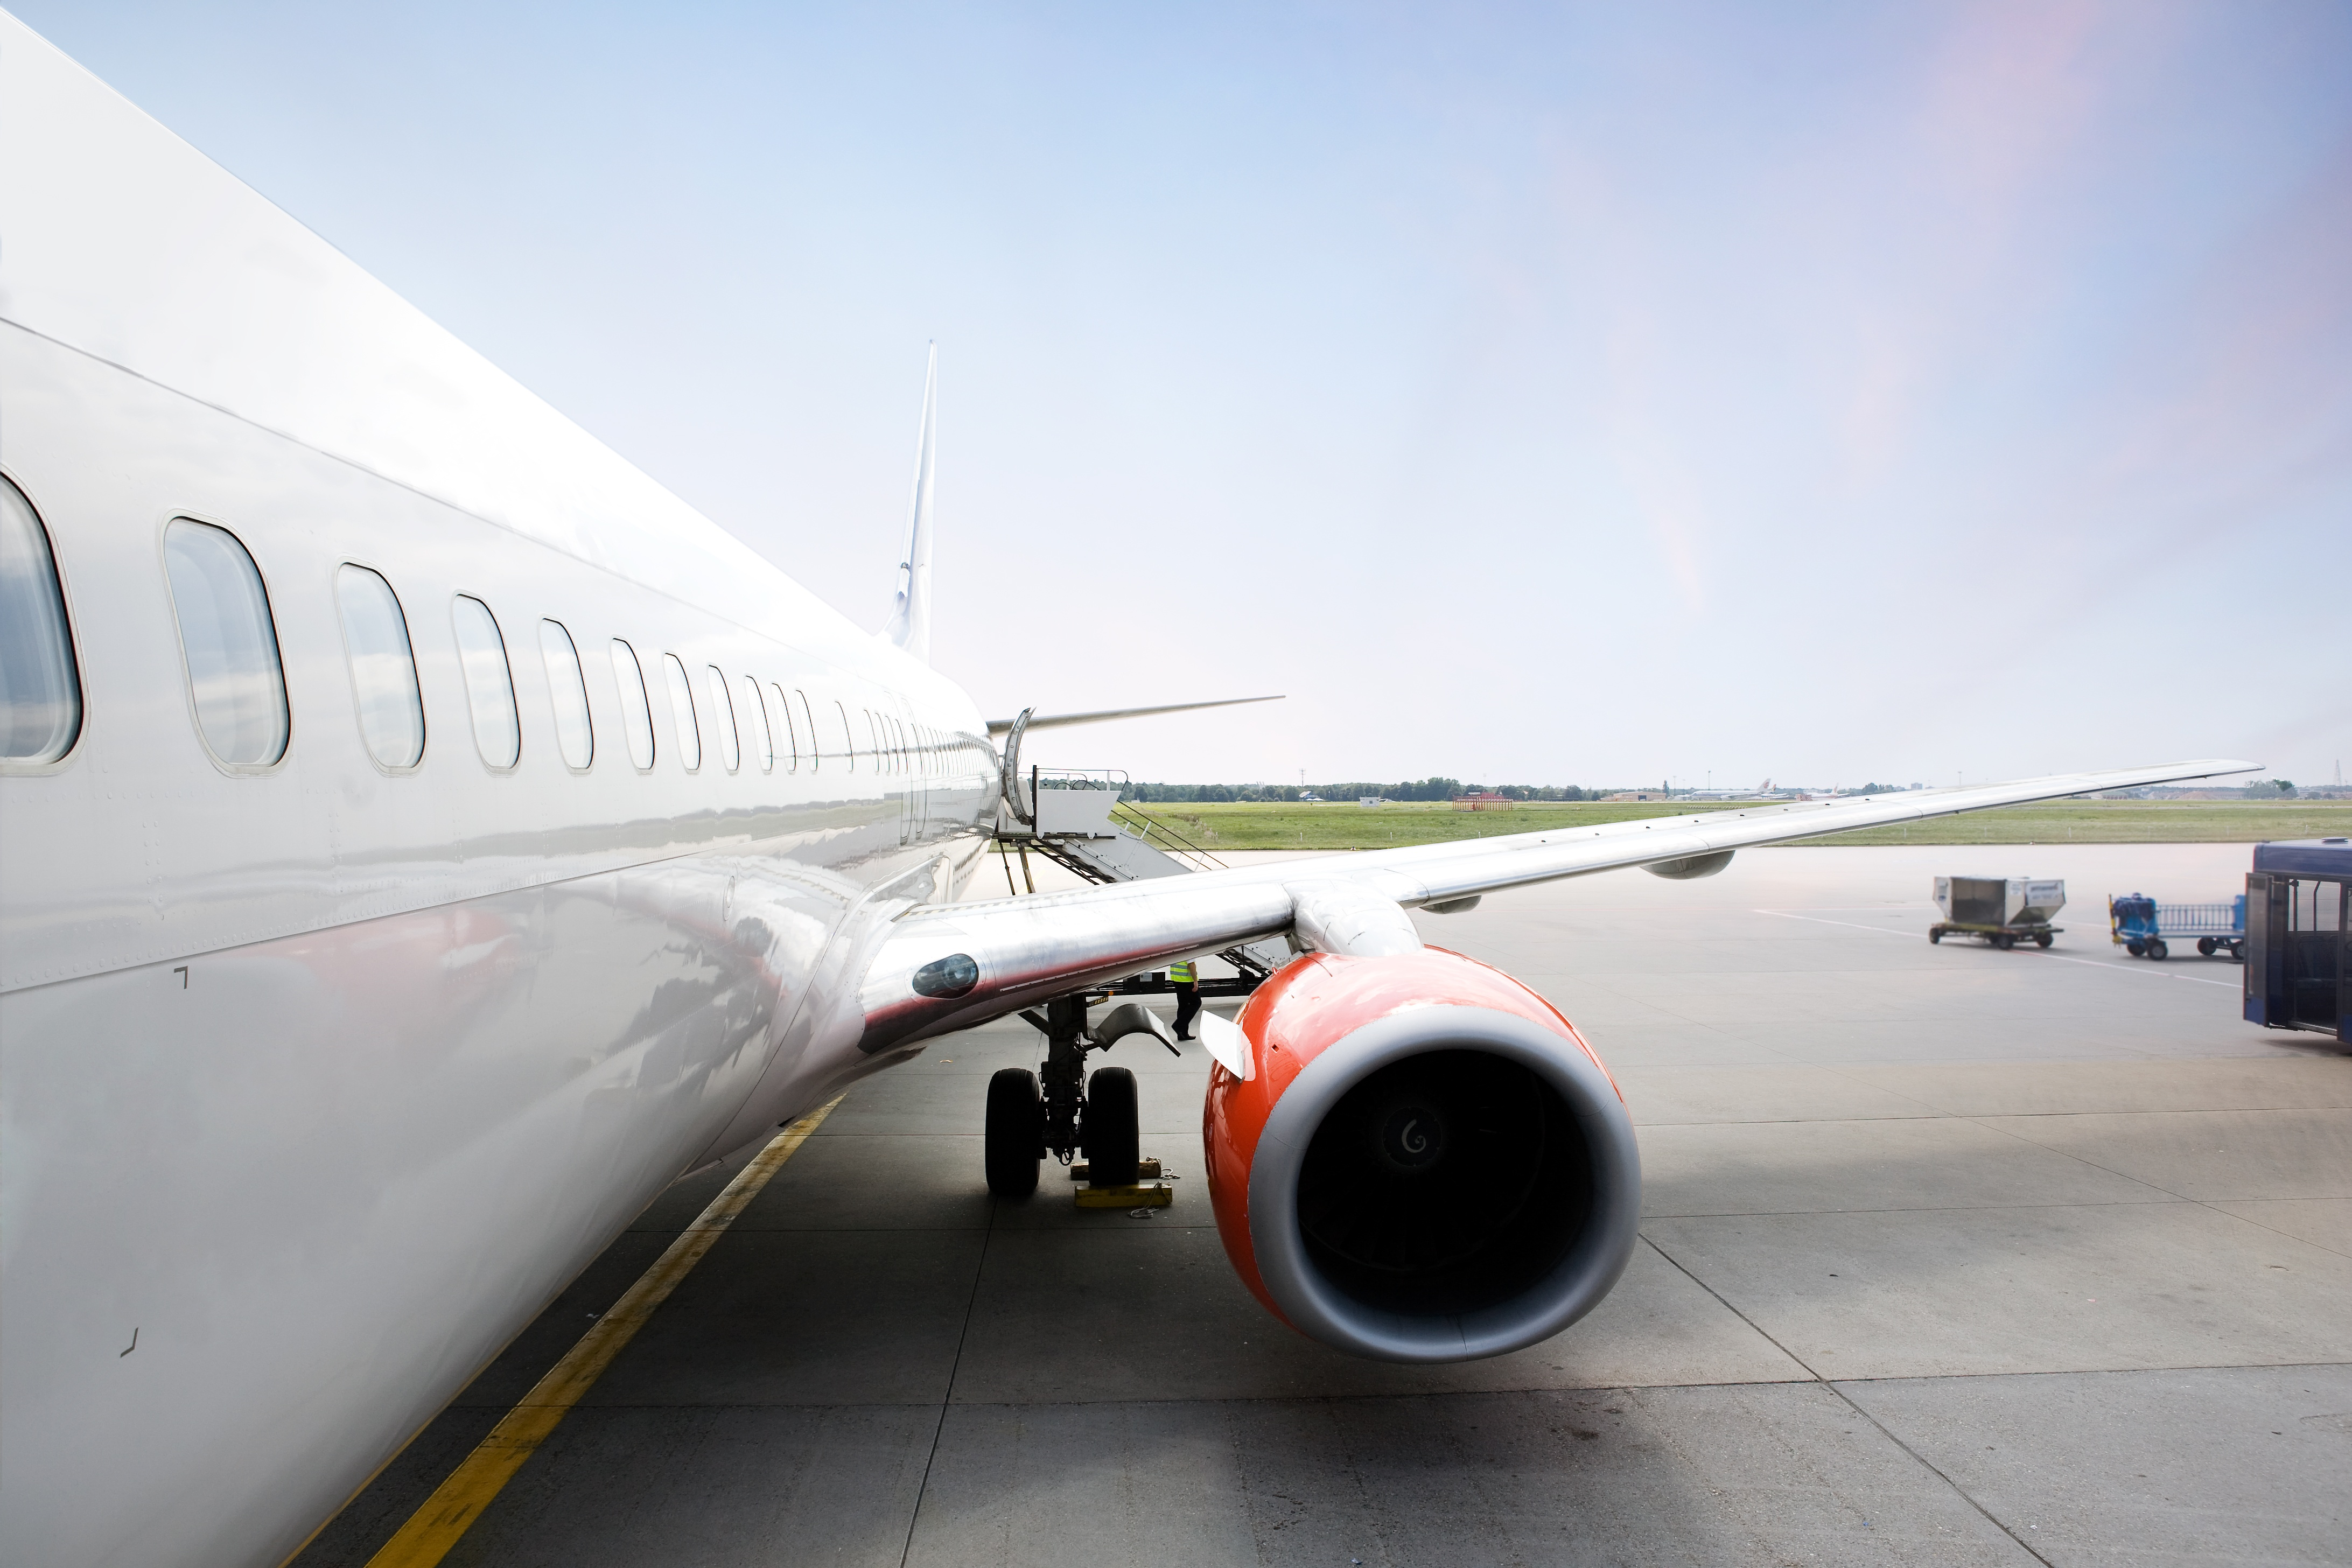 Airlines: To Enhance Travel Experience, Focus on Operational Basics